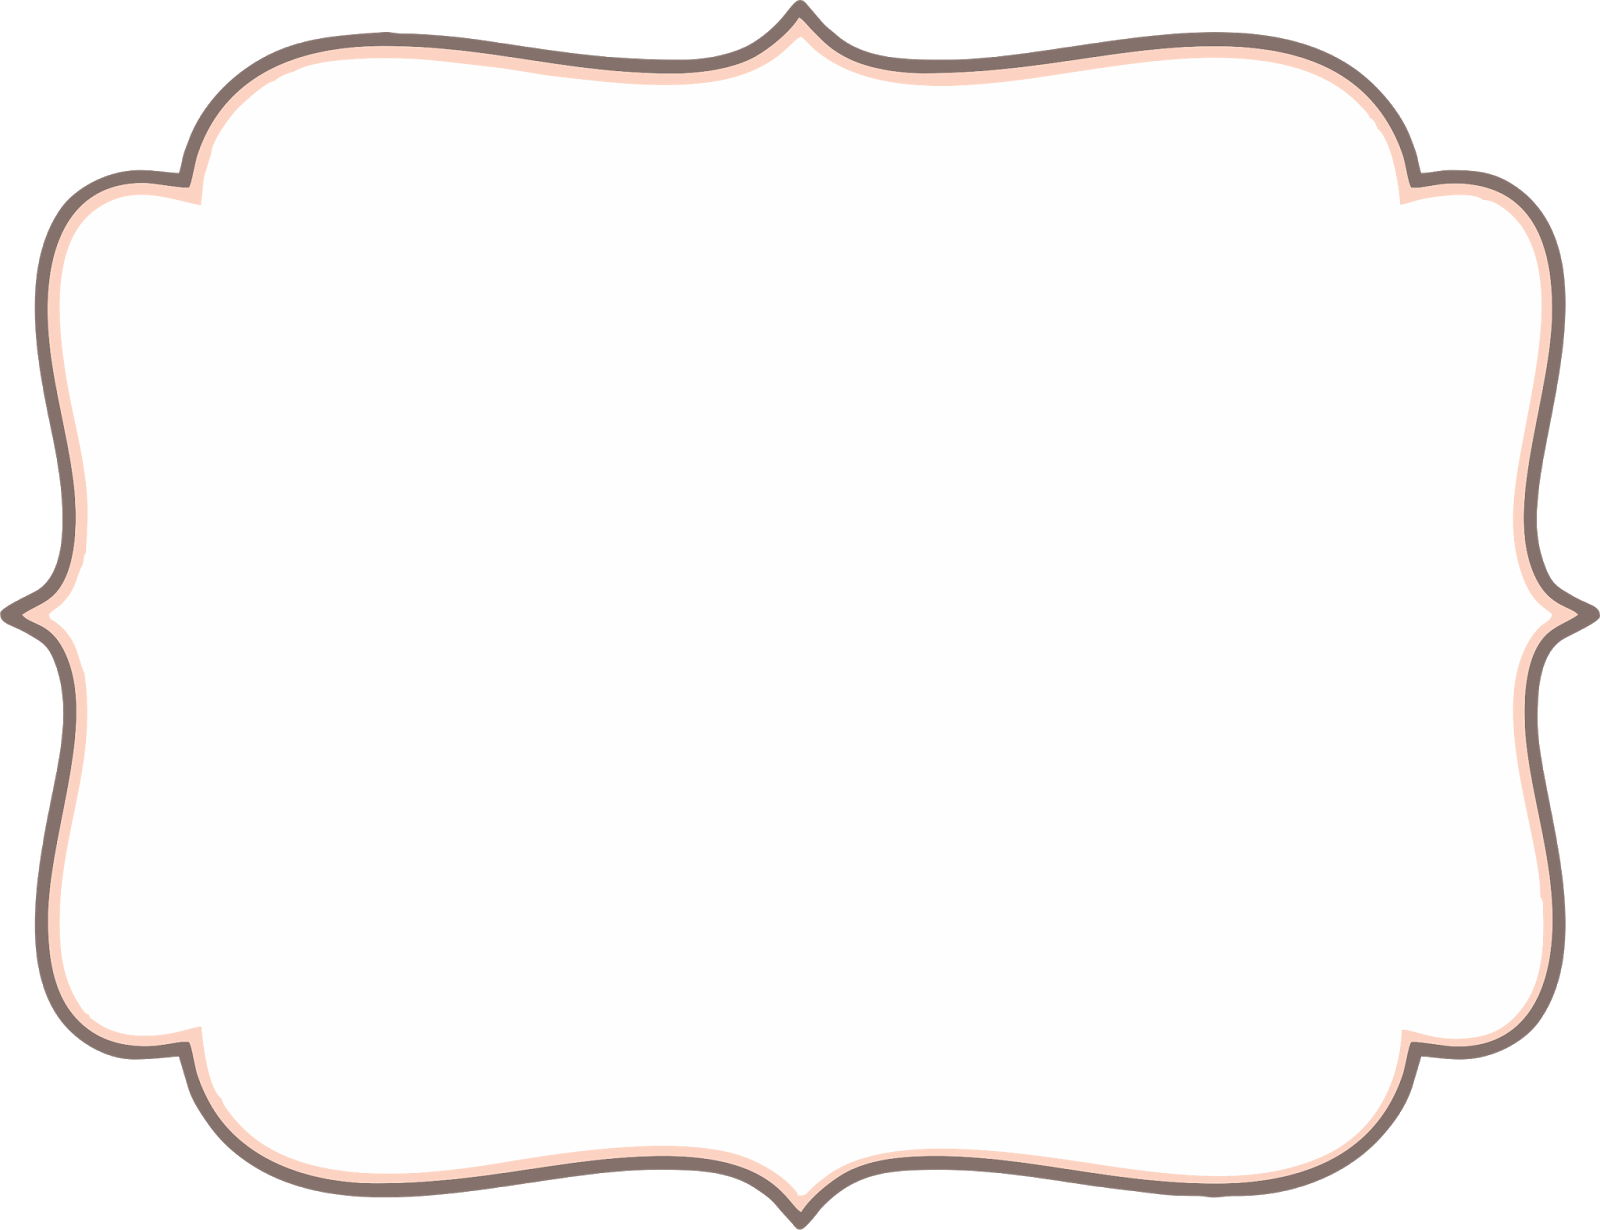 Find Hd Free Vintage Quadrada Moldura Png Download It Free For Personal Use Paper Picture Frames Clip Art Borders Gold Clipart